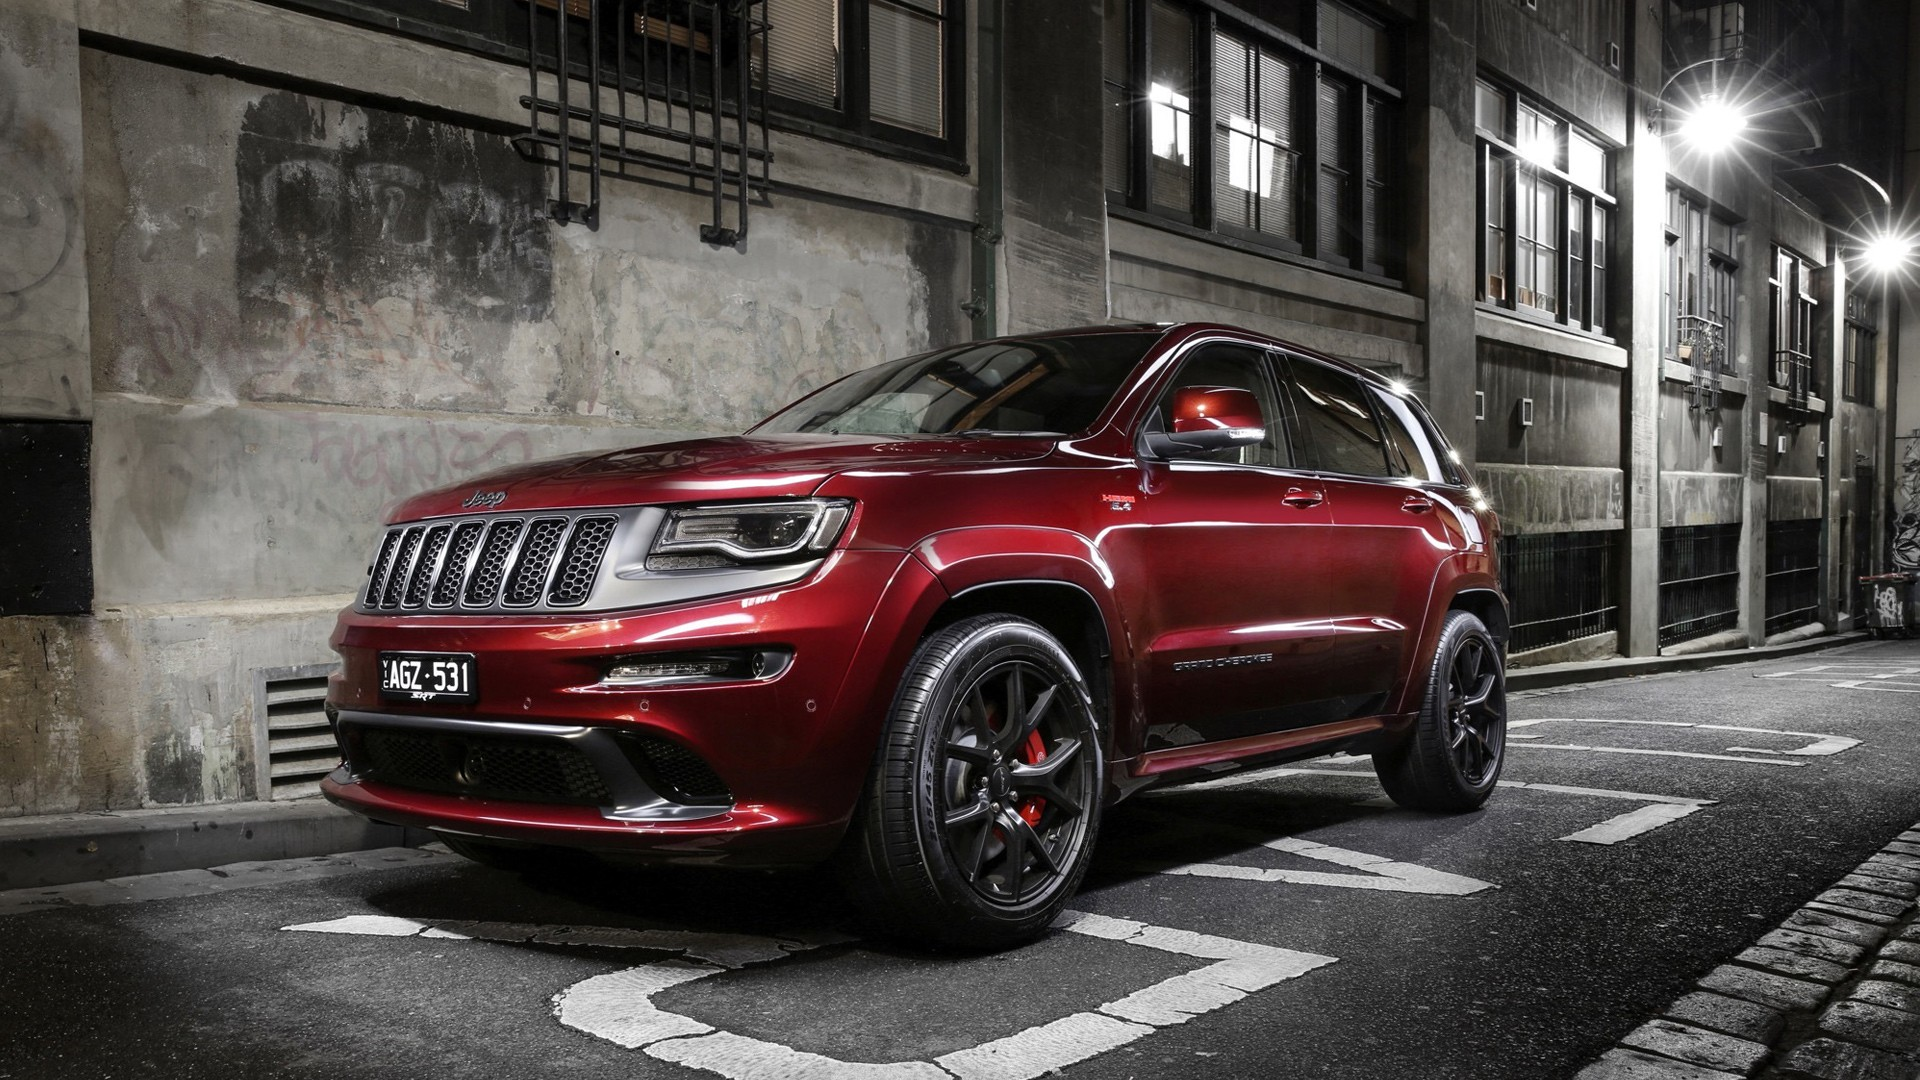 2016 jeep grand cherokee srt night limited edition wallpaper hd car wallpapers id 6788. Black Bedroom Furniture Sets. Home Design Ideas